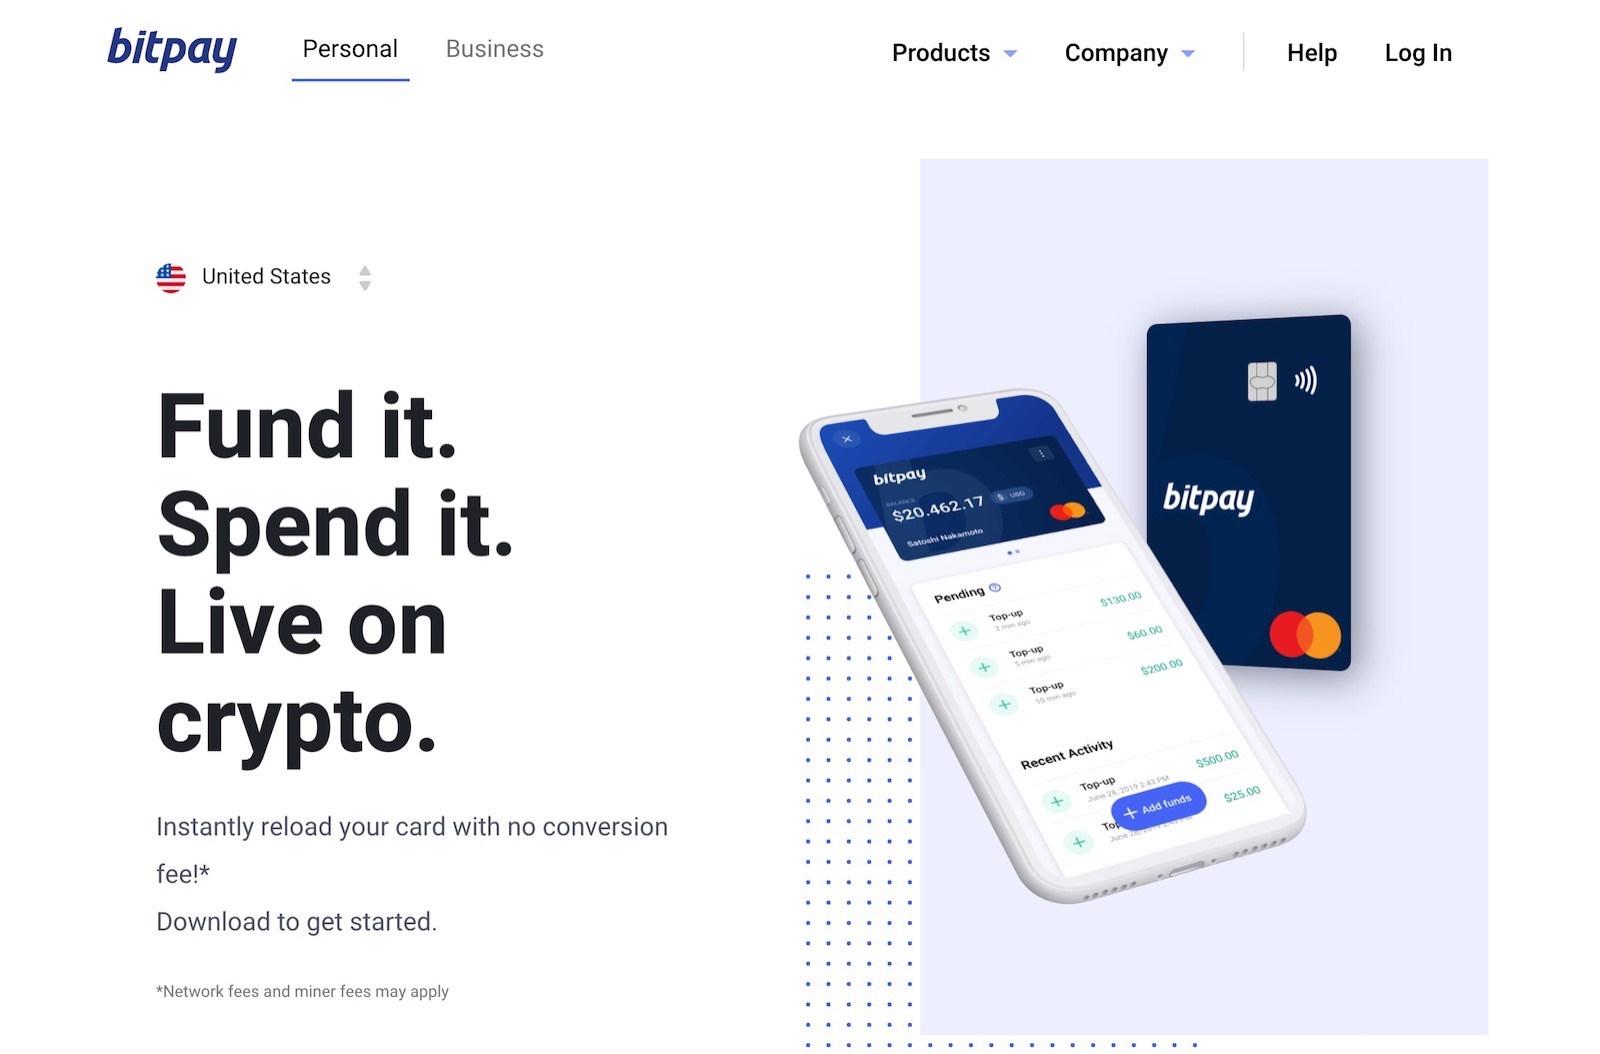 Bitpay Mastercard compatible with apple pay